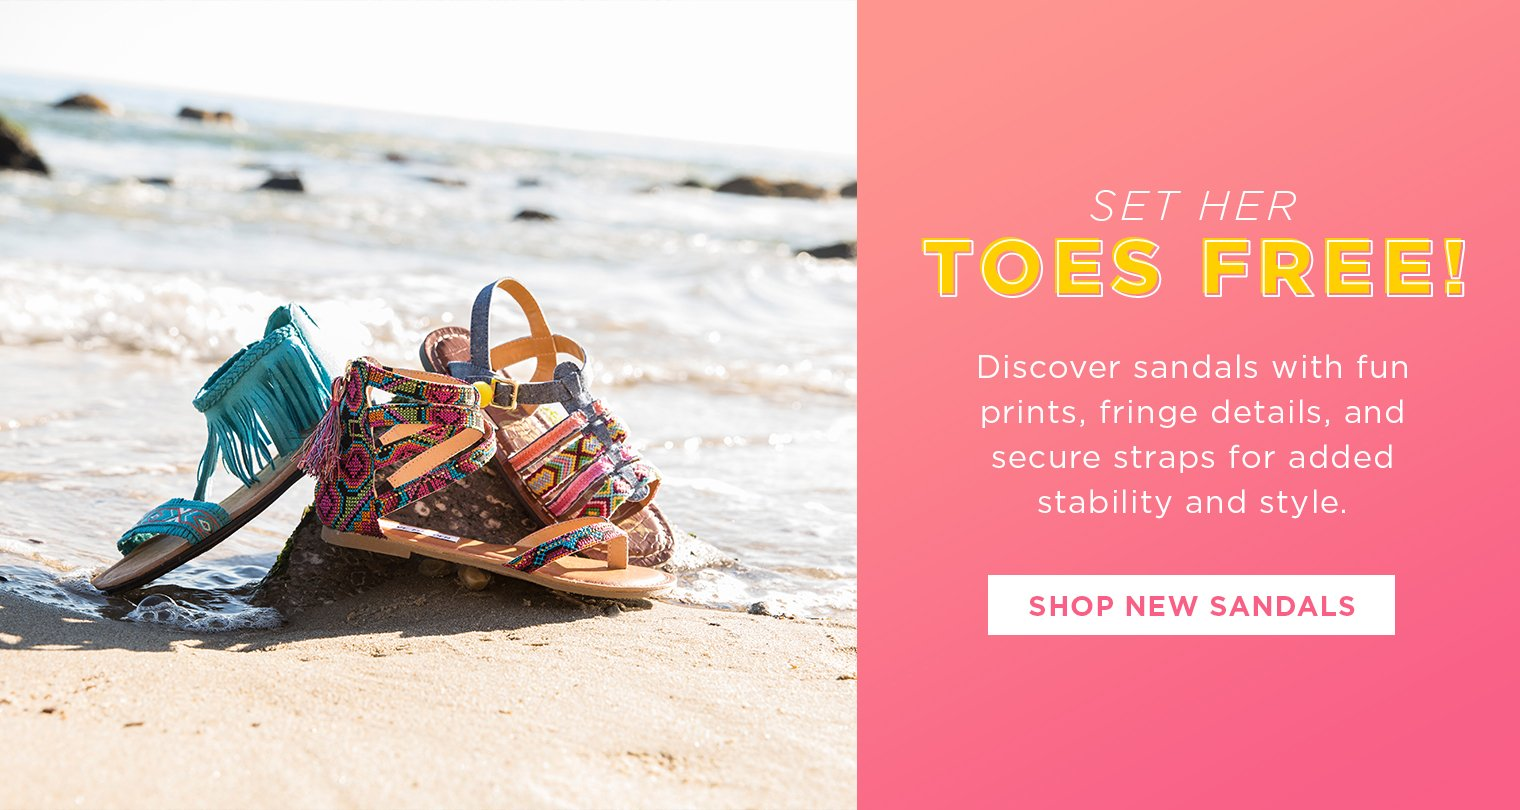 Image of girls sandals on the beach with ocean in the background